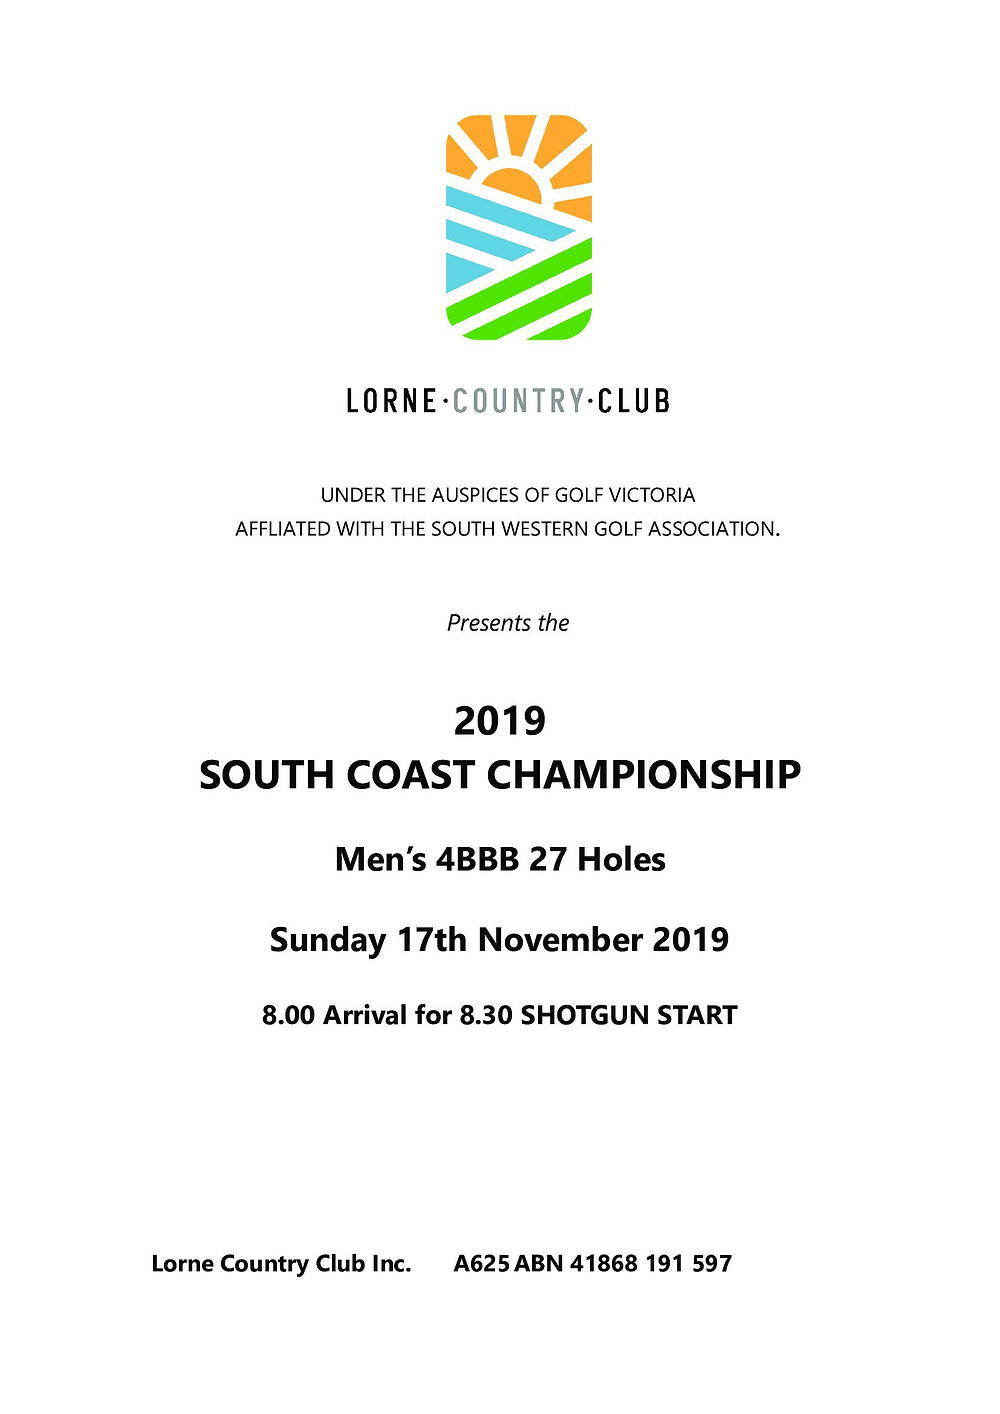 Entries available on-line or in the Lorne Country Club